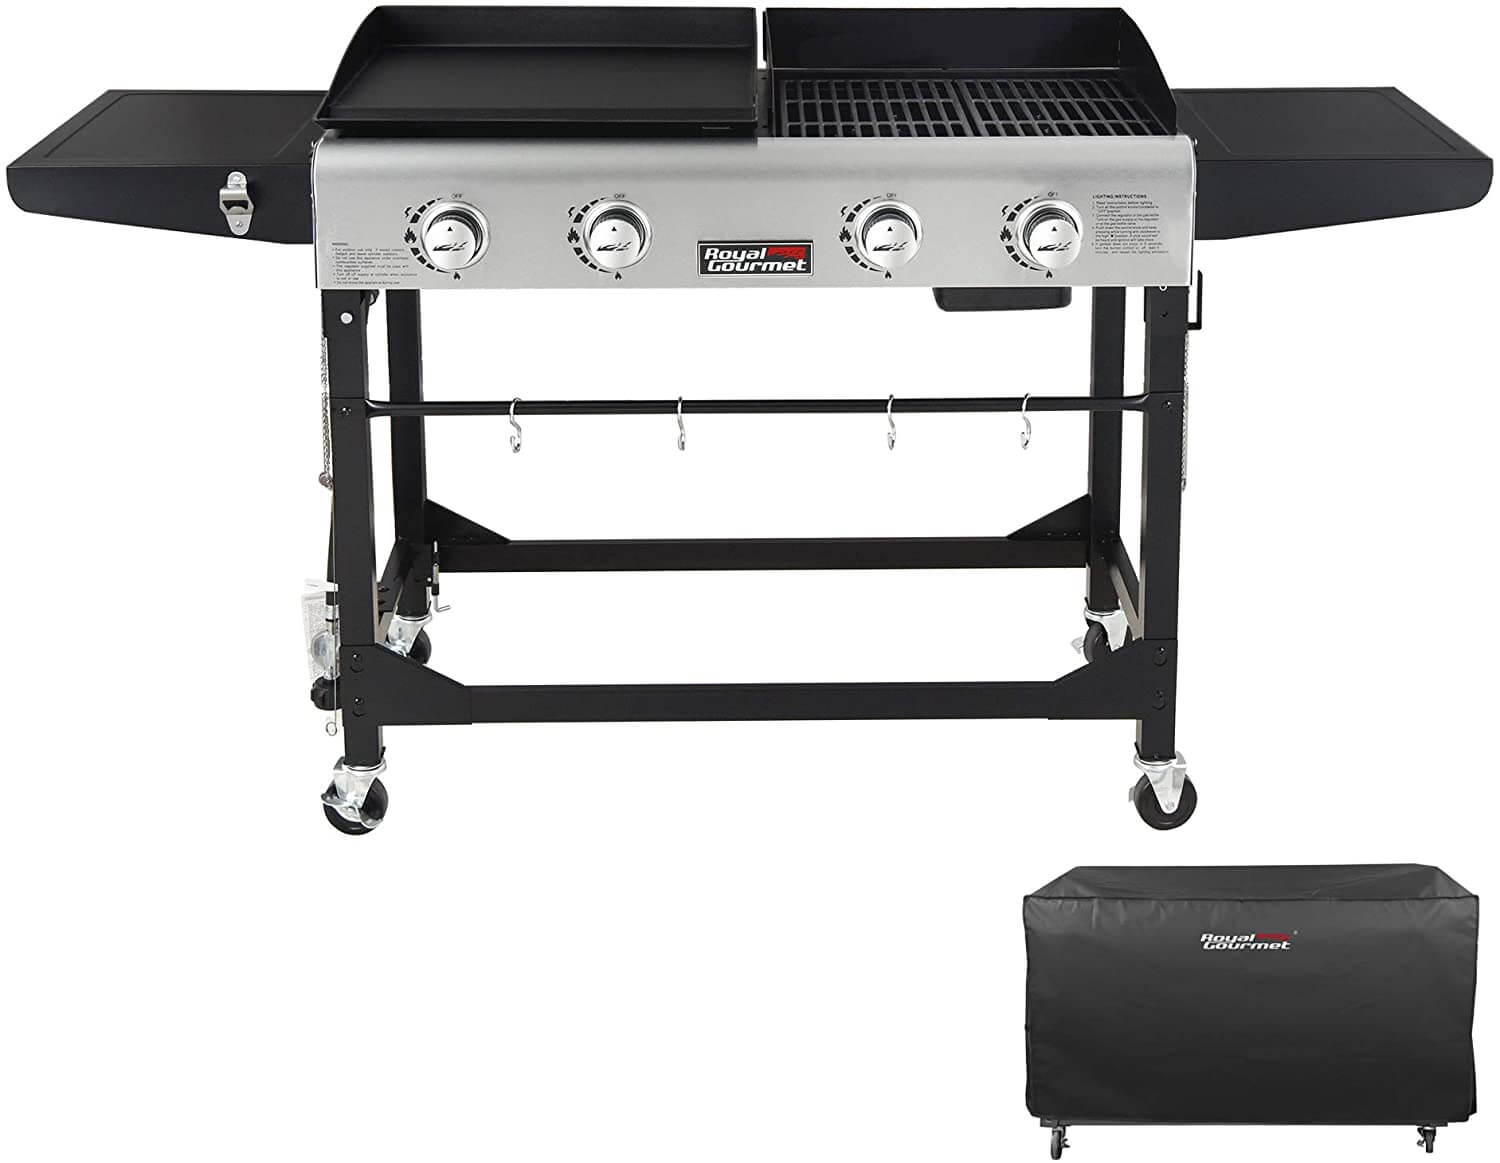 Royal Gourmet GD401C Portable Propane Flat Top Gas Grill